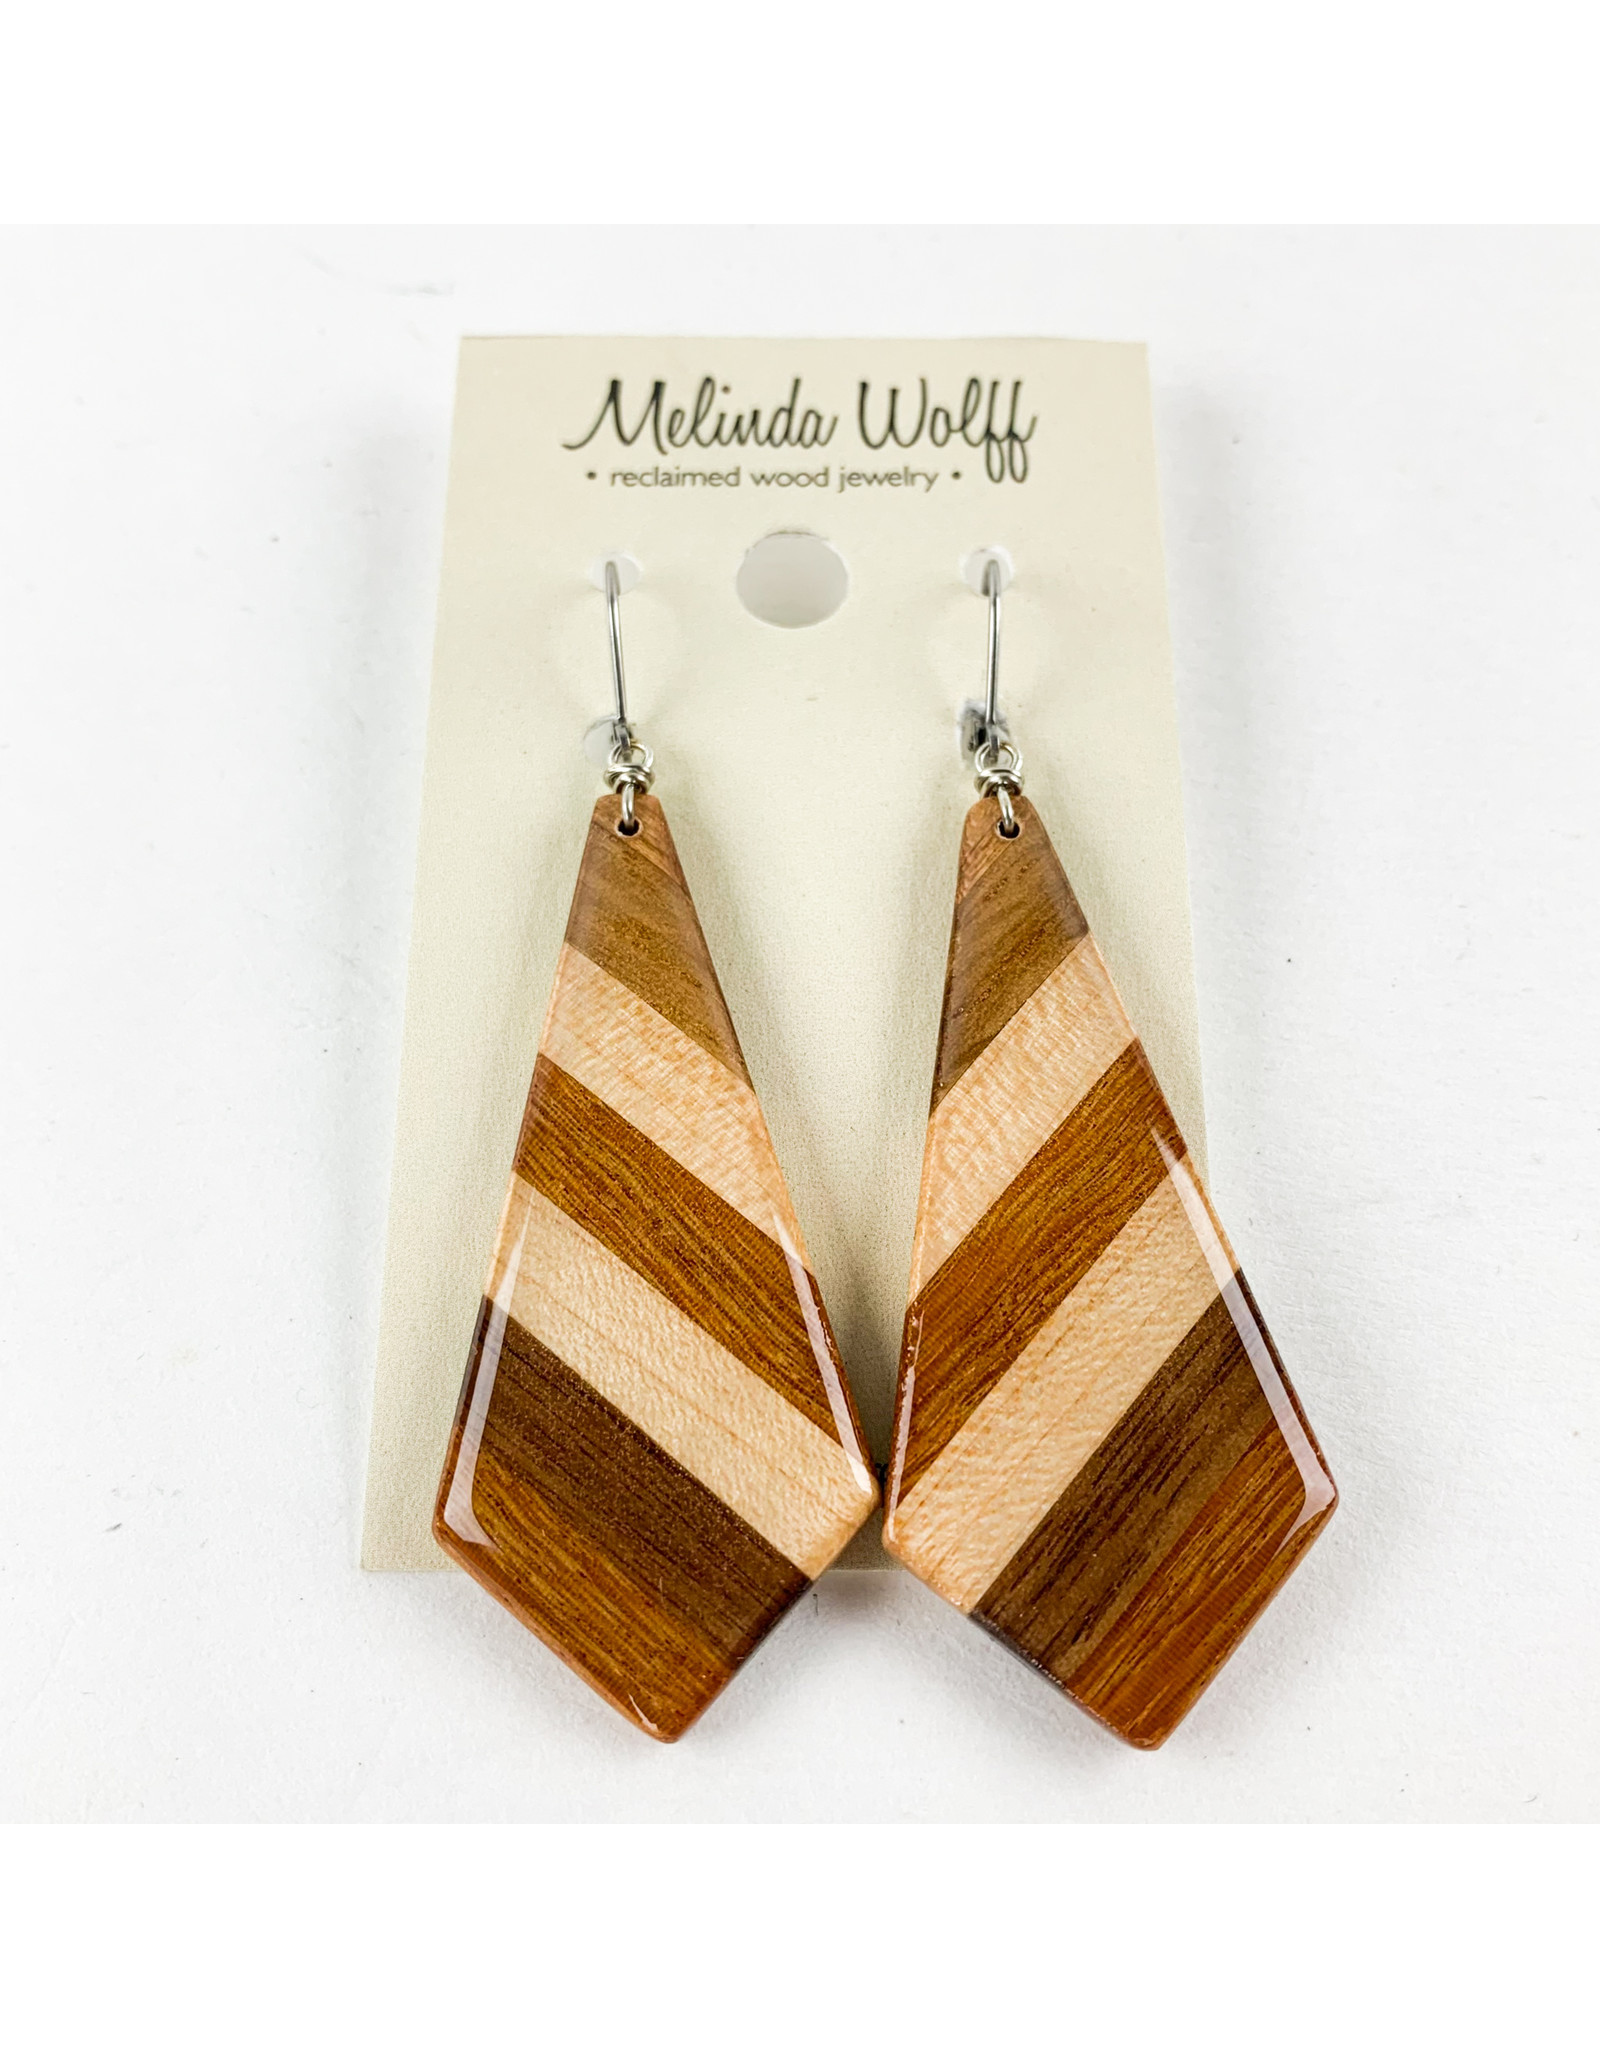 Melinda Wolff-consignment earrings, lg geometric, consignment E10-L